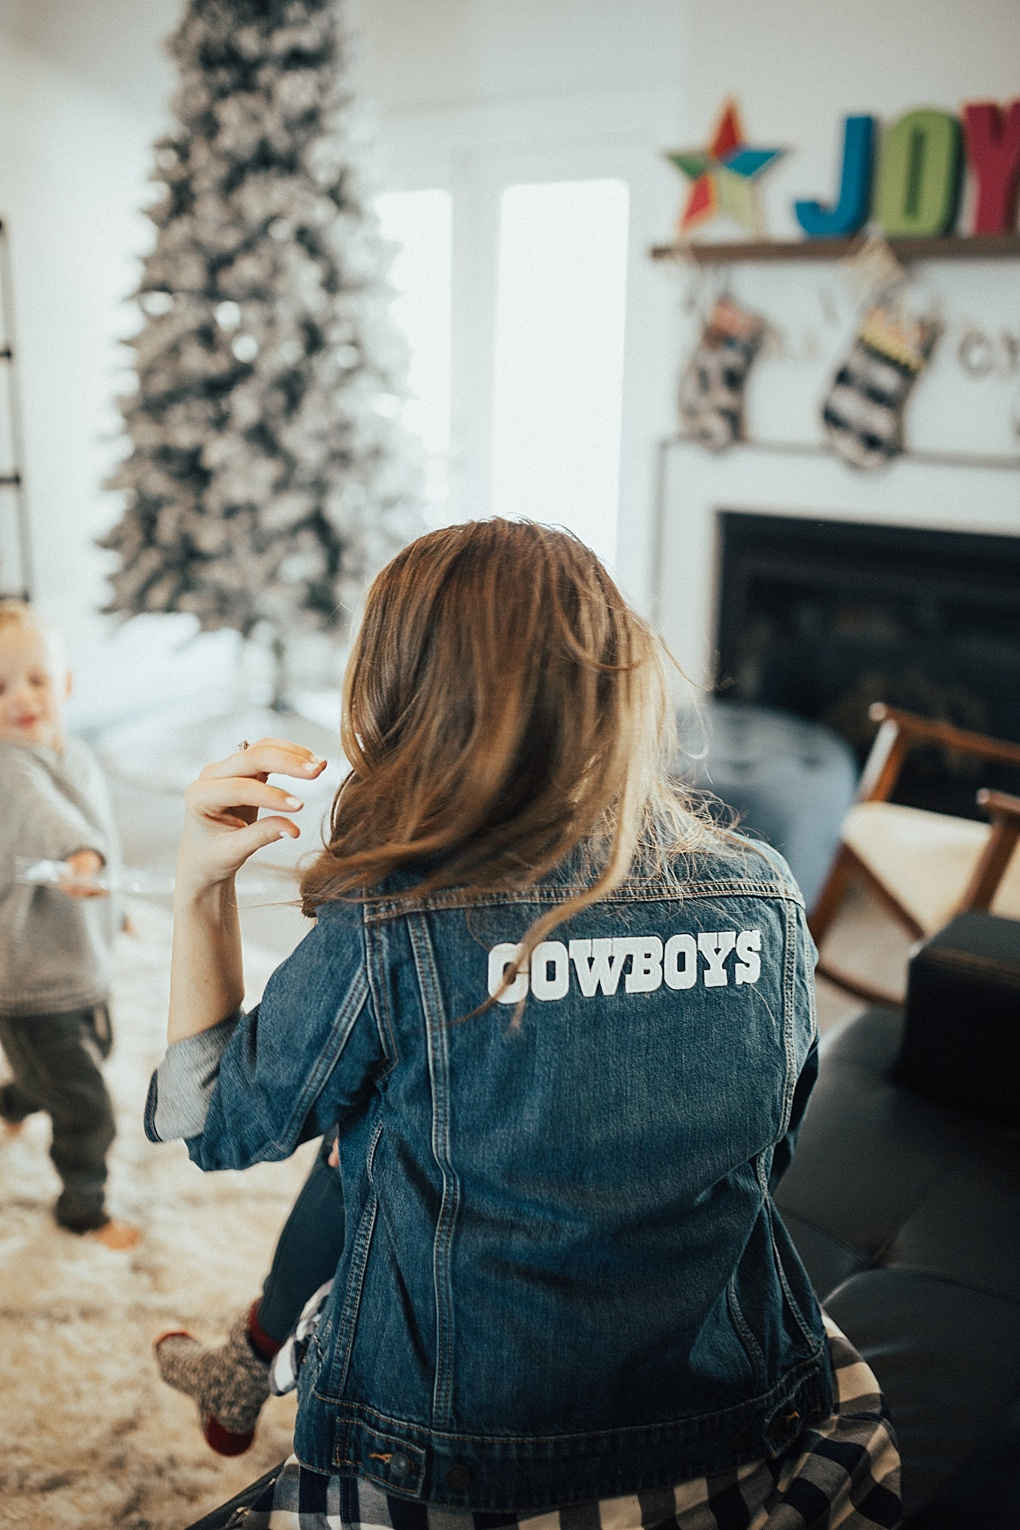 Getting Pro-Bowl Ready with my Dallas Cowboys Jacket by popular Utah style blogger Dani Marie